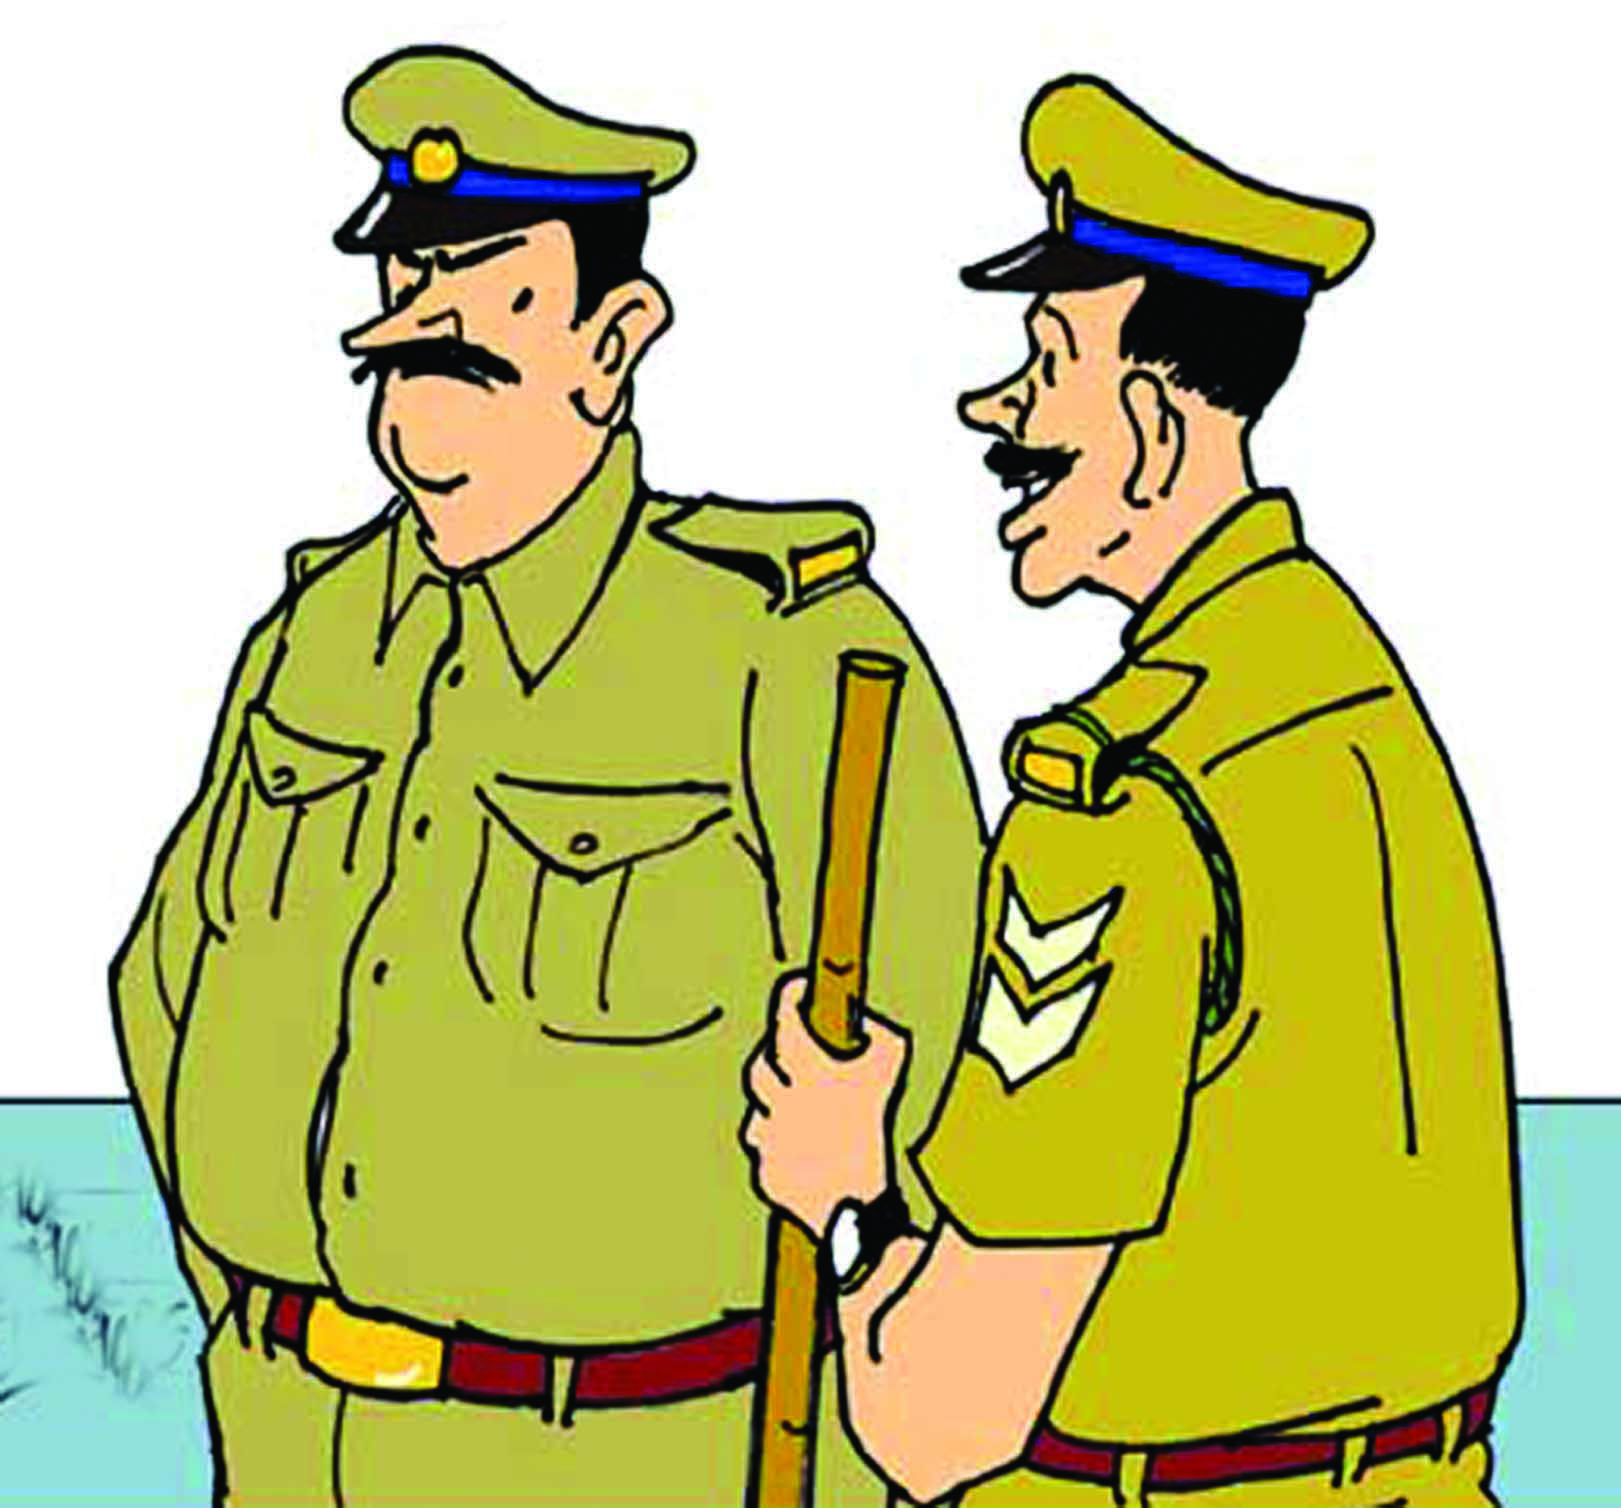 Traffic clipart indian Arm or Twisting? Policing